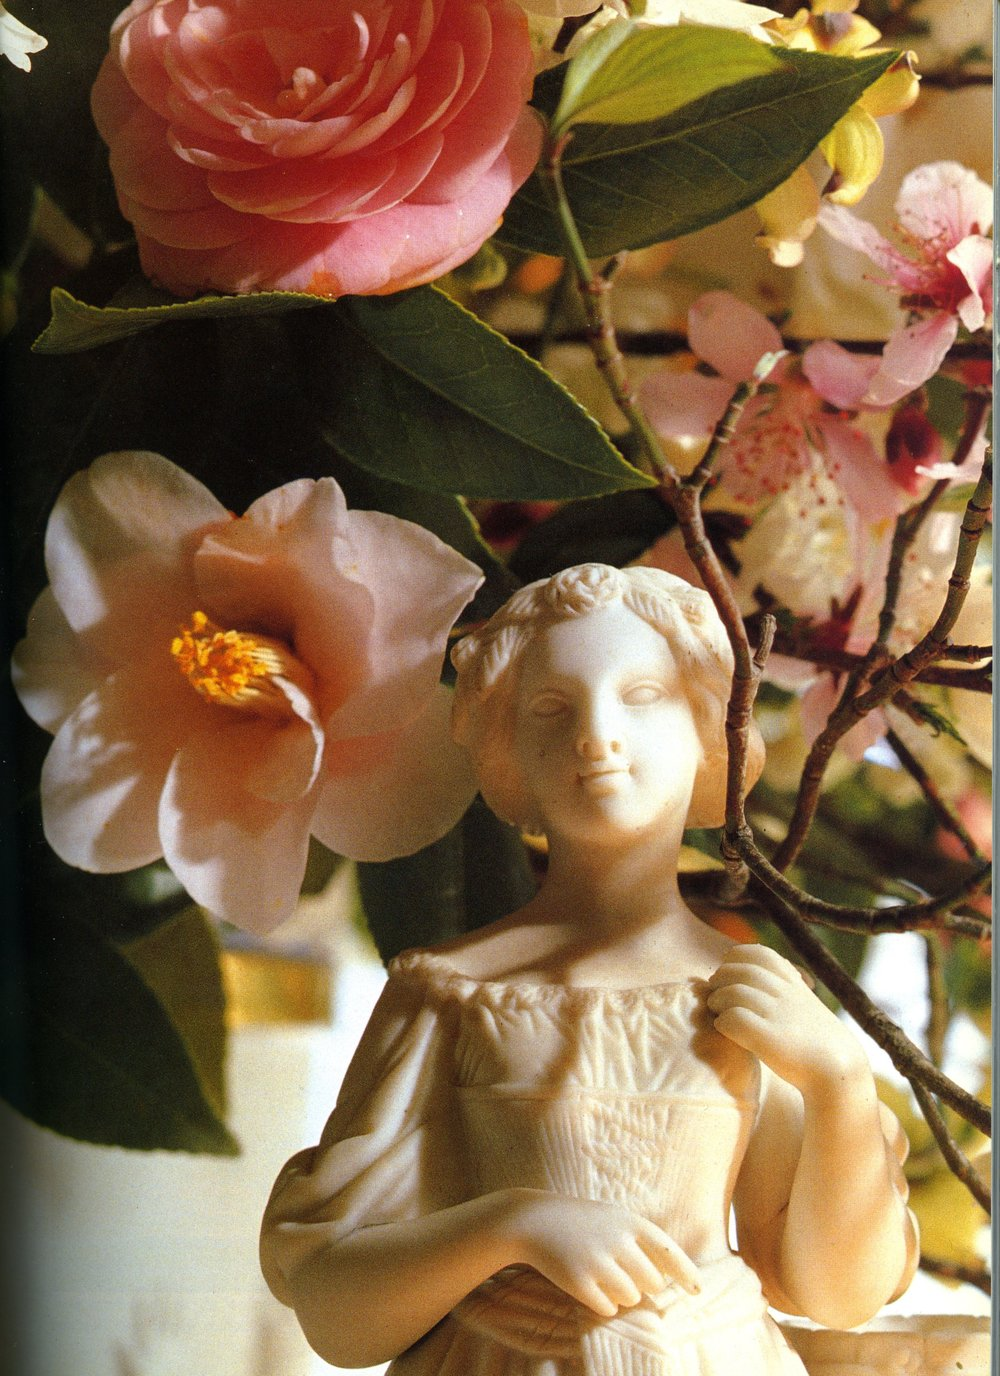 Bust with Flower018.jpg